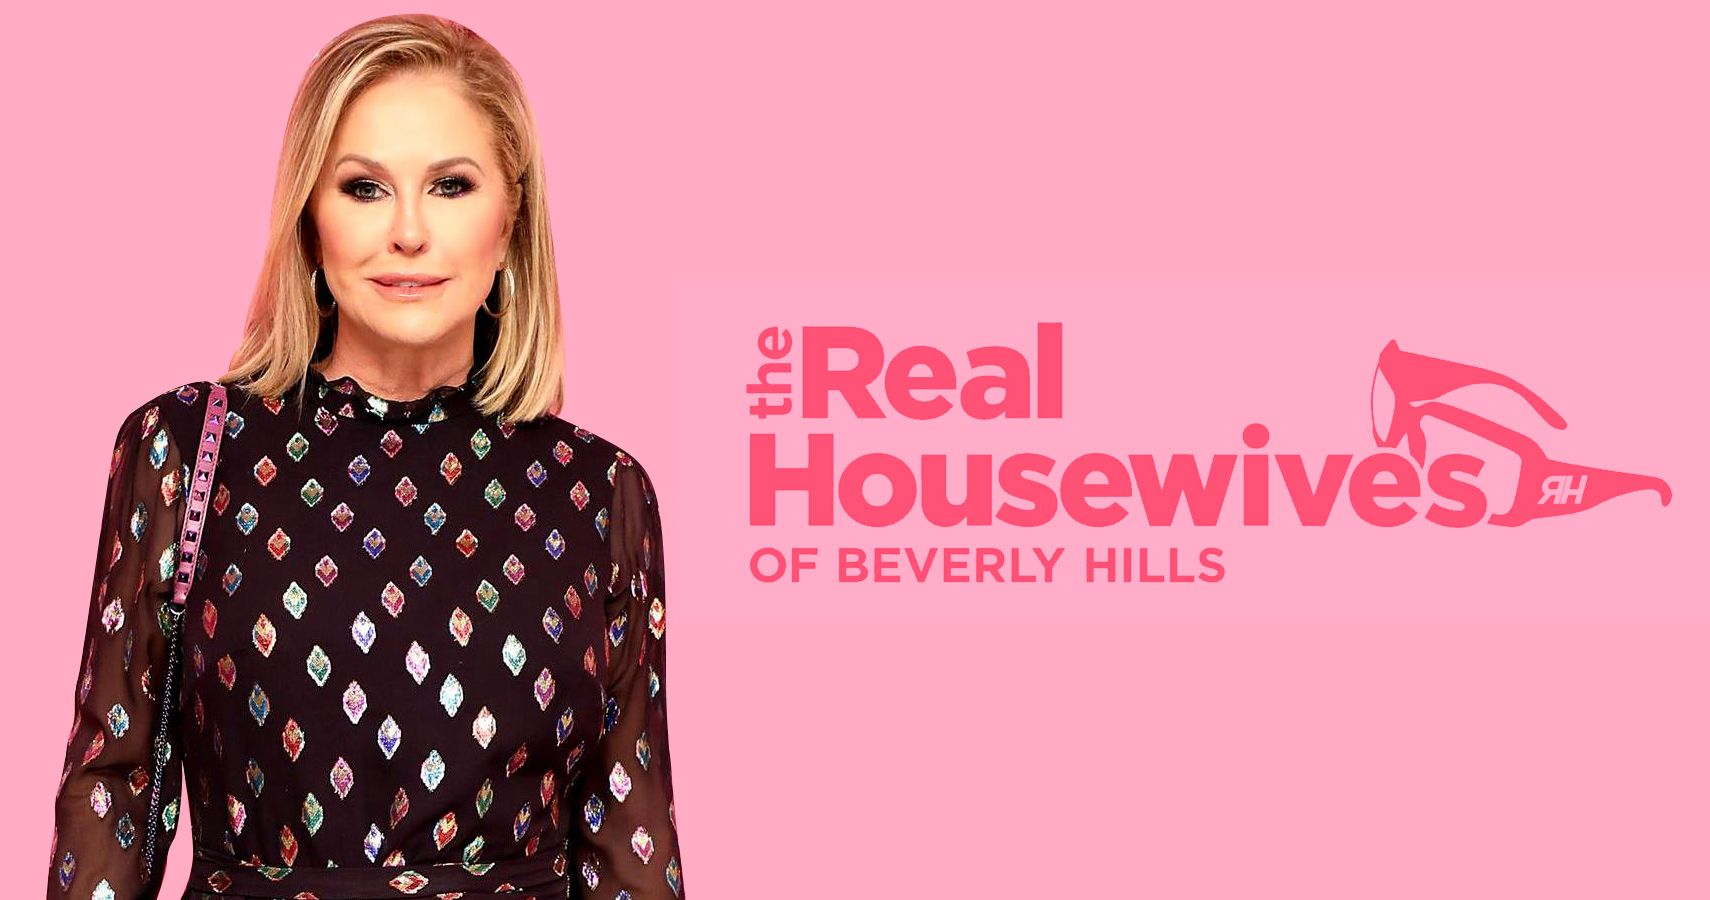 Paris Hilton's Mom Kathy Joins The Cast Of 'Real Housewives Of Beverly Hills'